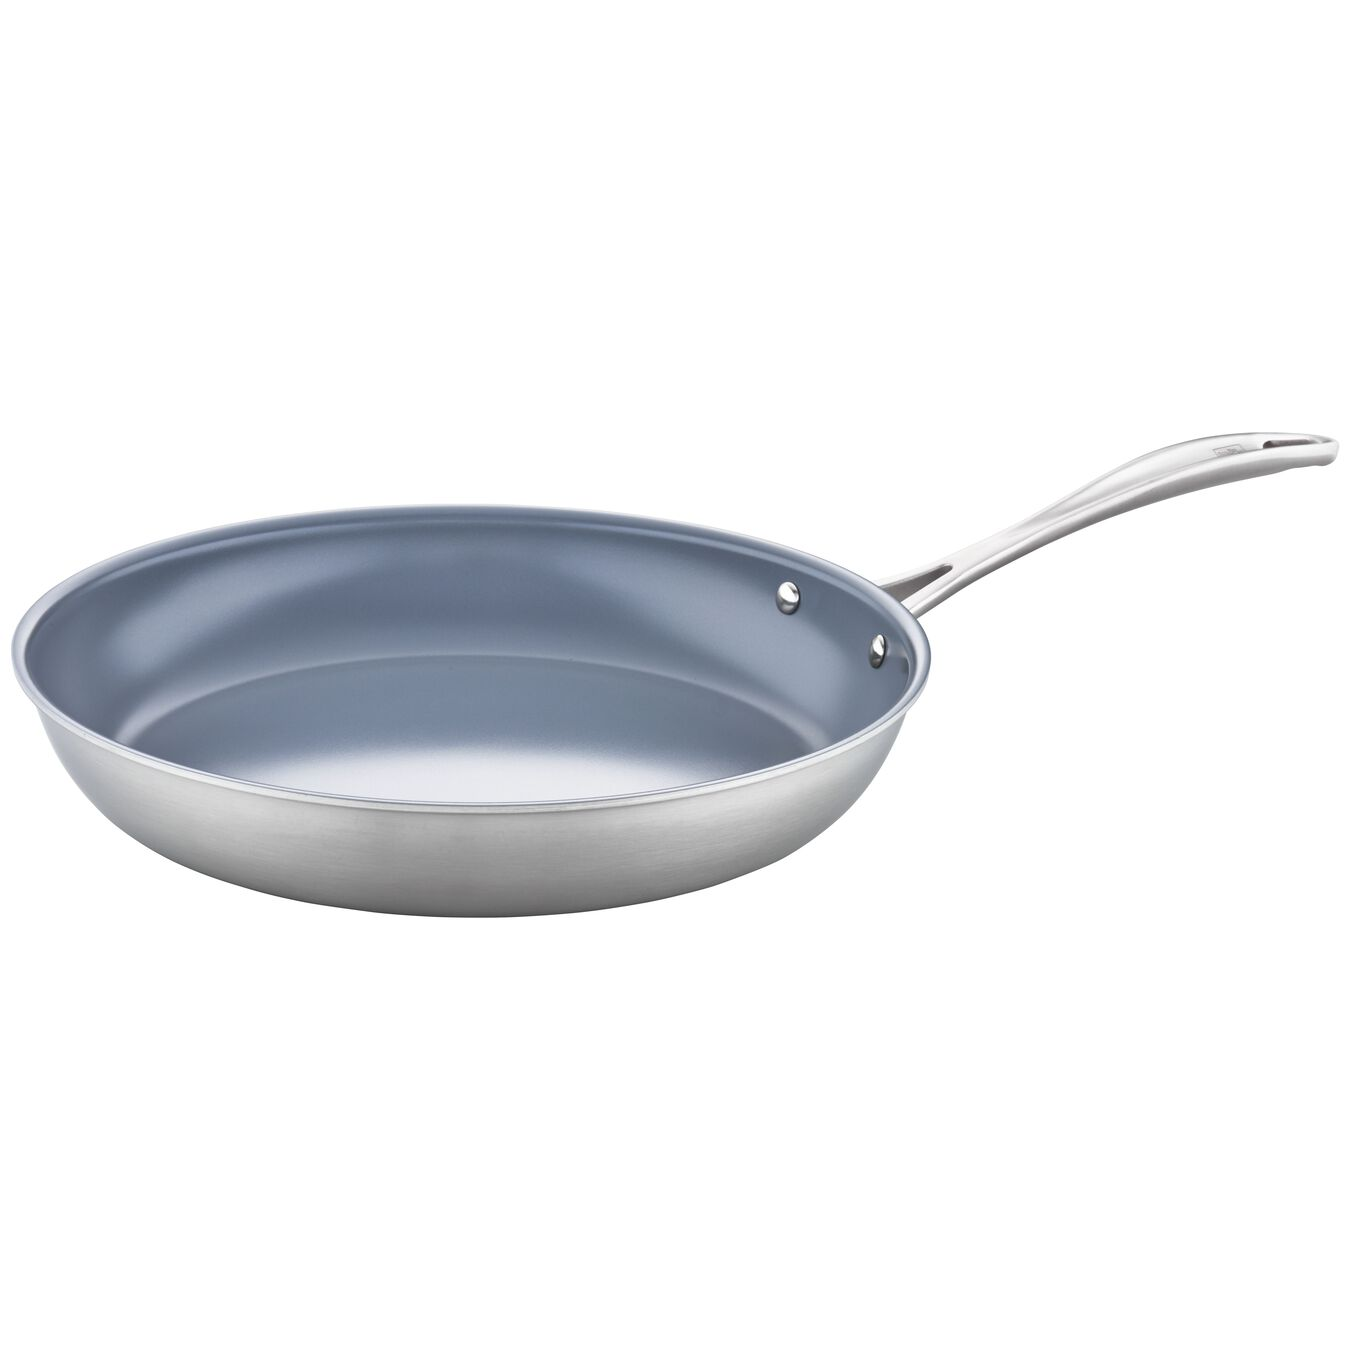 3-ply 12-inch Stainless Steel Ceramic Nonstick Fry Pan,,large 1